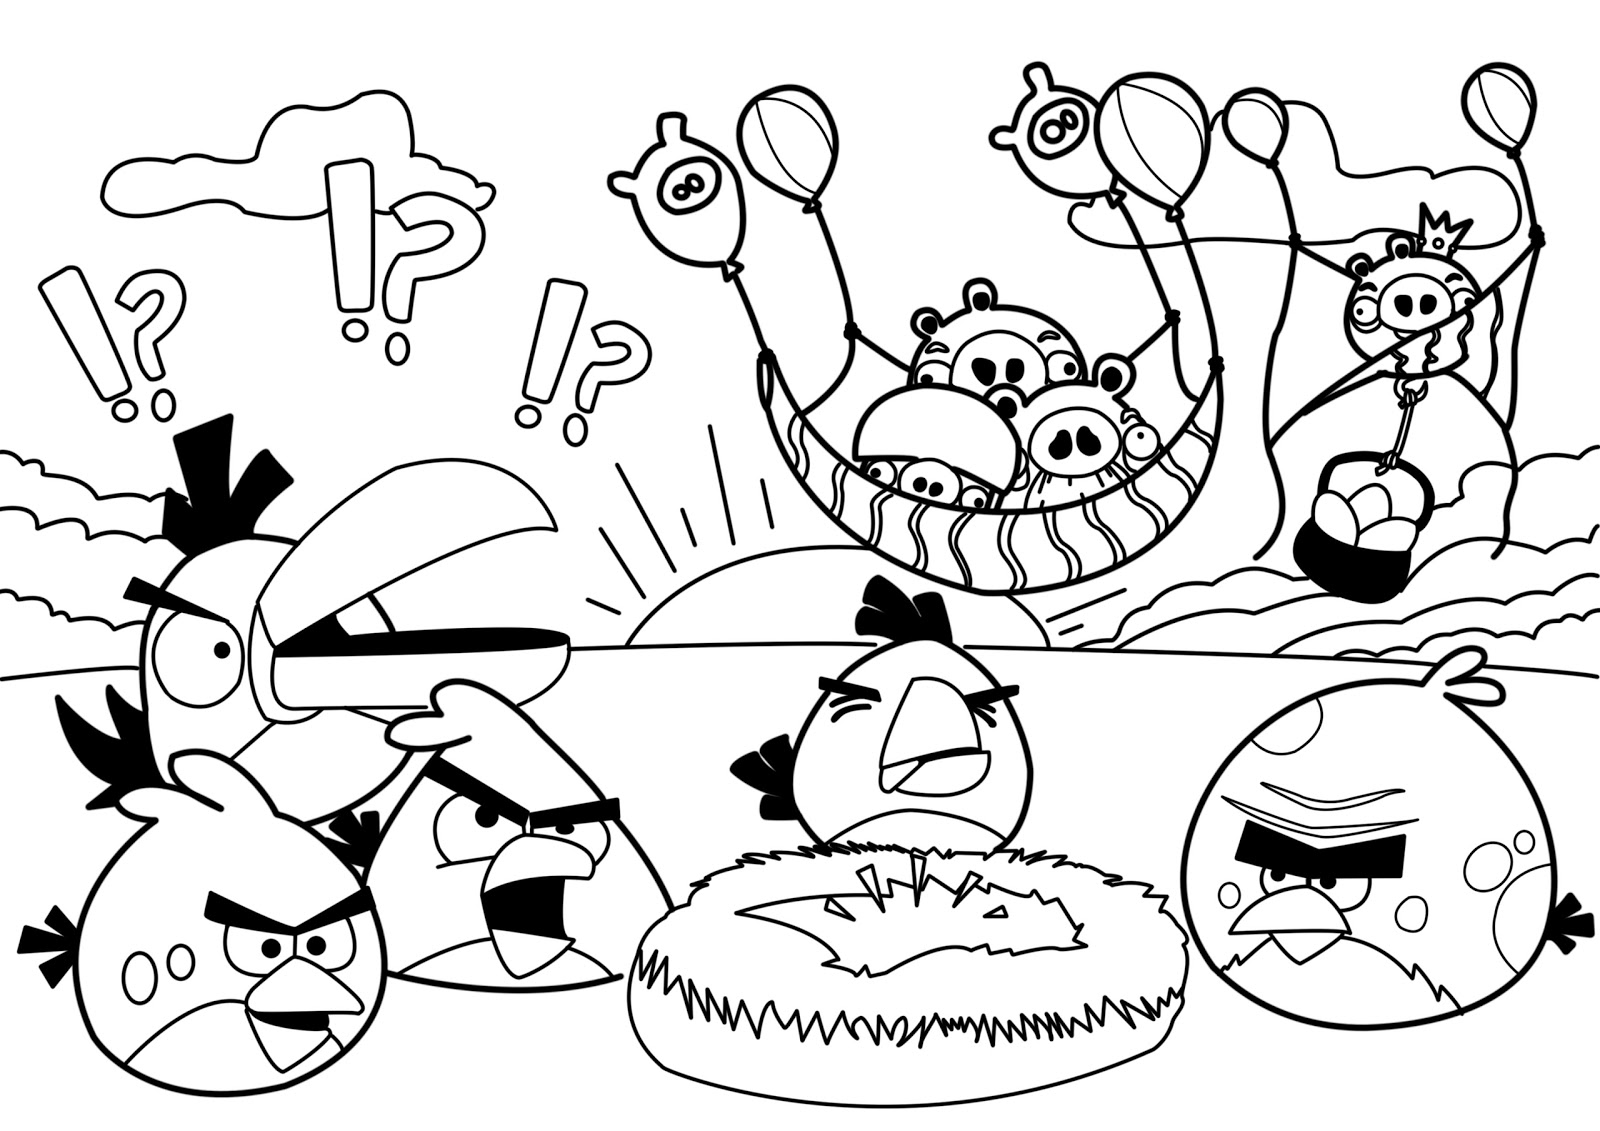 angry birds printable coloring pages angry birds printable coloring pages birds printable angry pages coloring